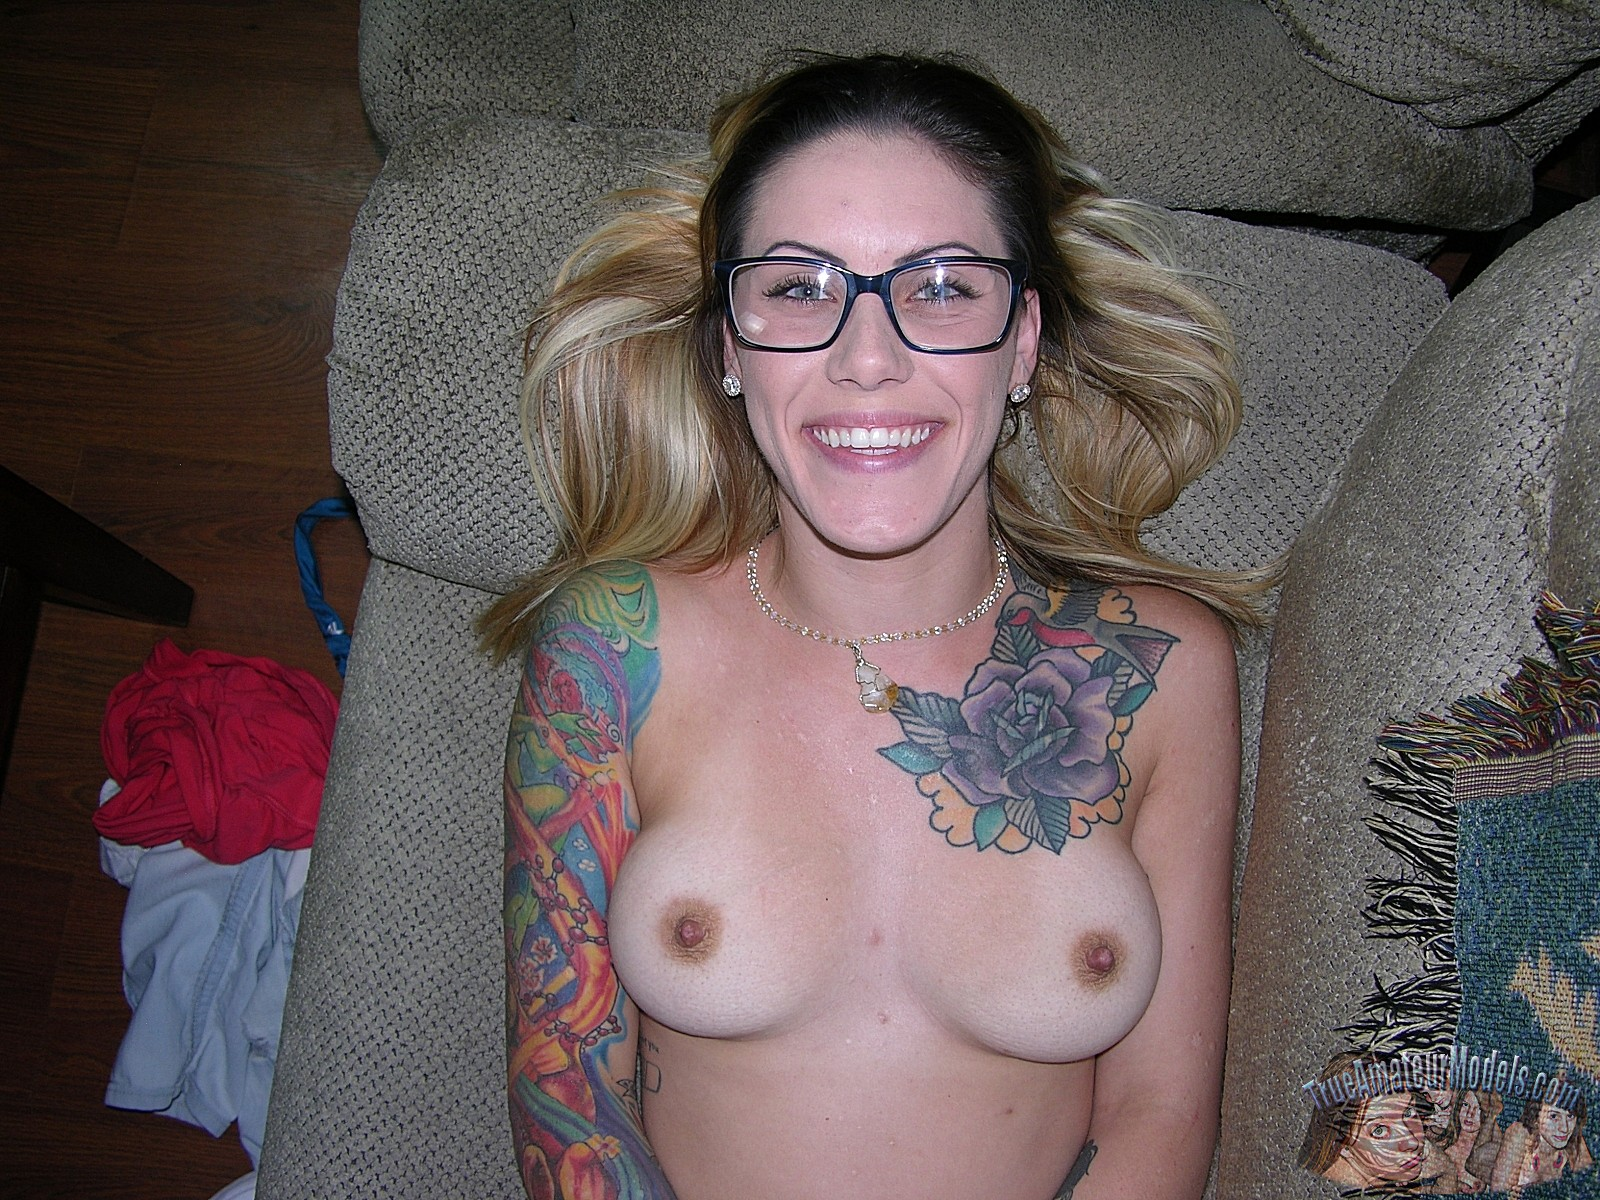 sexy bookworm from midwest thinks she has serious chances in amateur model business #6